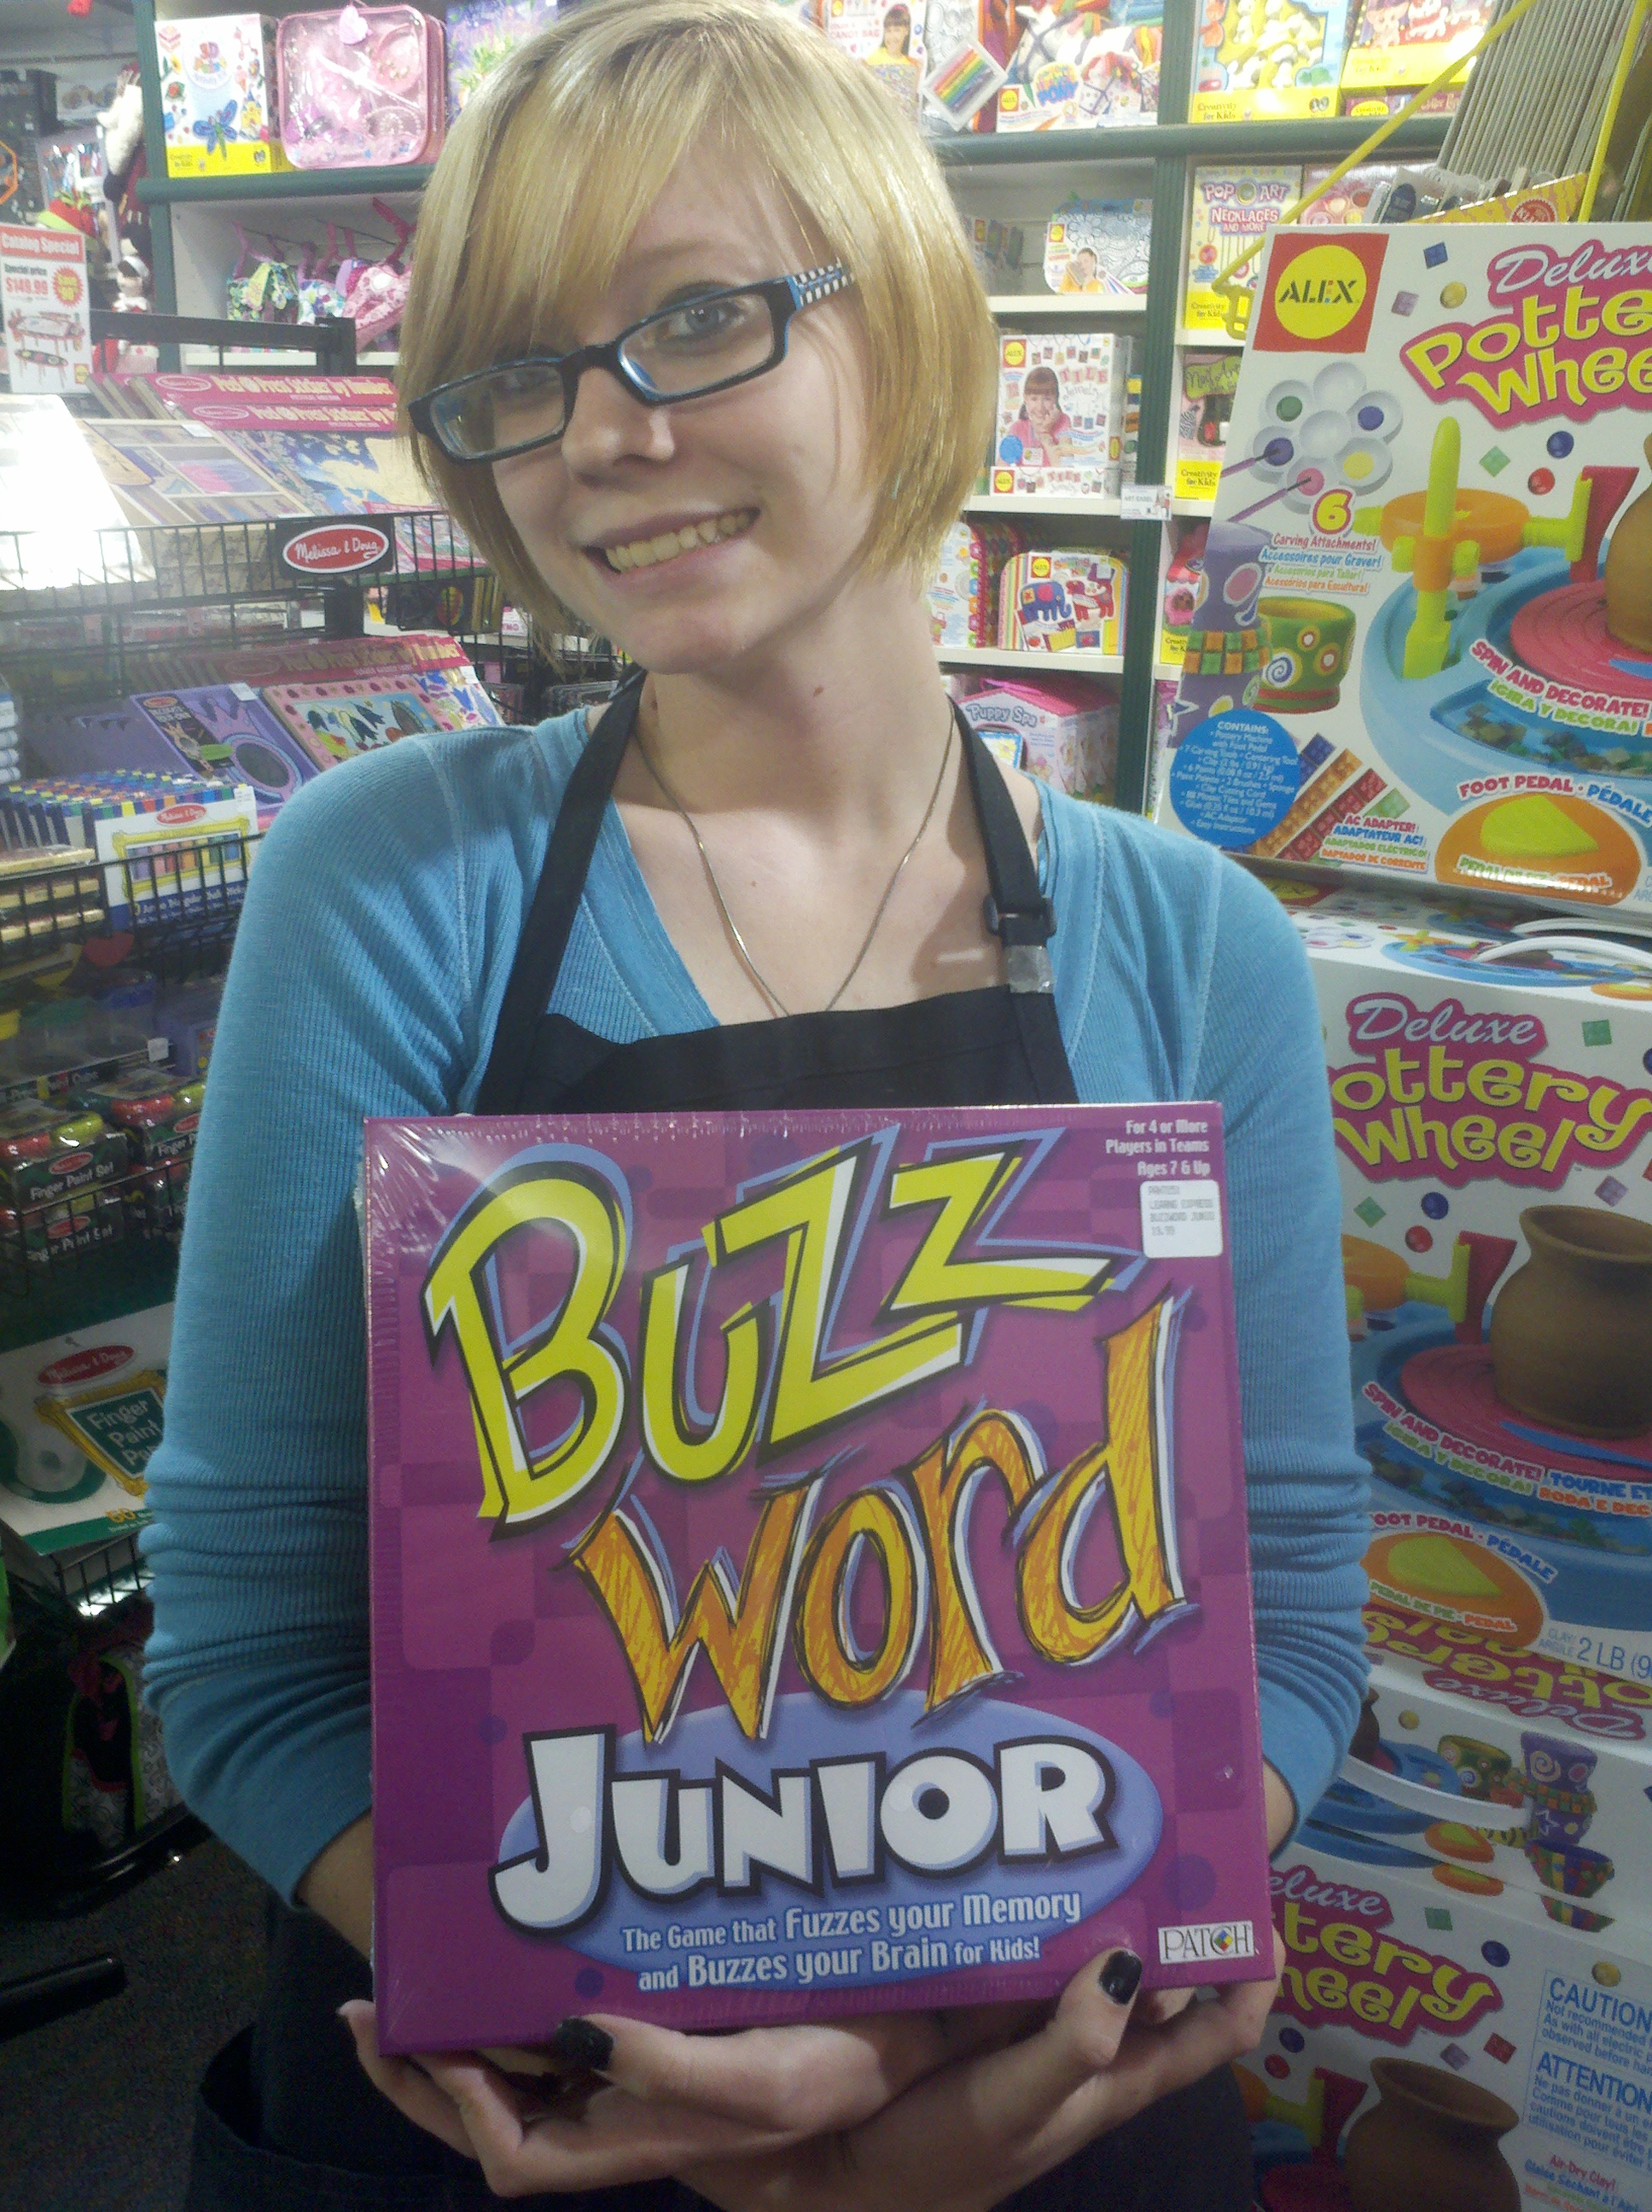 Buzz Word Junior! ? Learning Express Gifts- Brands included PopSocket, Star Wars Lego, Pokemon ...